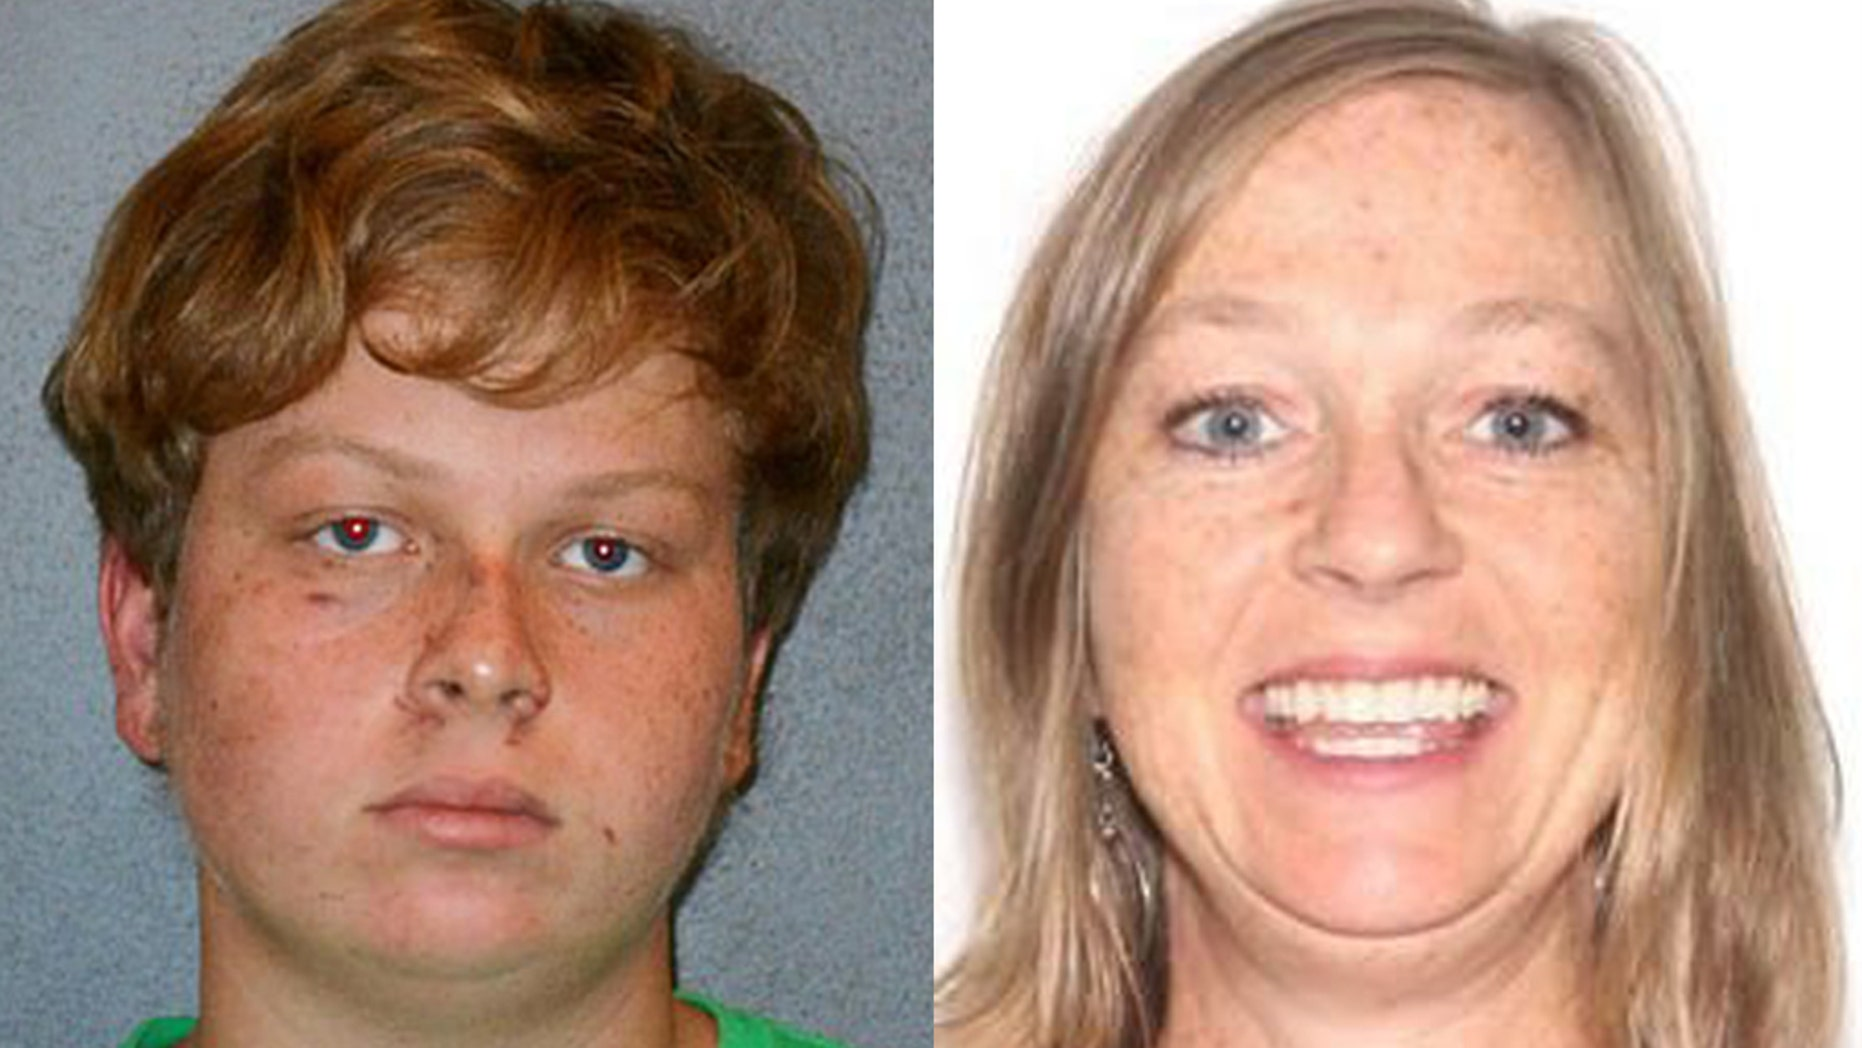 Gregory Ramos, 15, has confessed to killing his 46-year-old mother, Gail Cleavenger, after they argued about a poor grade late Thursday at their home in DeBary, Florida.